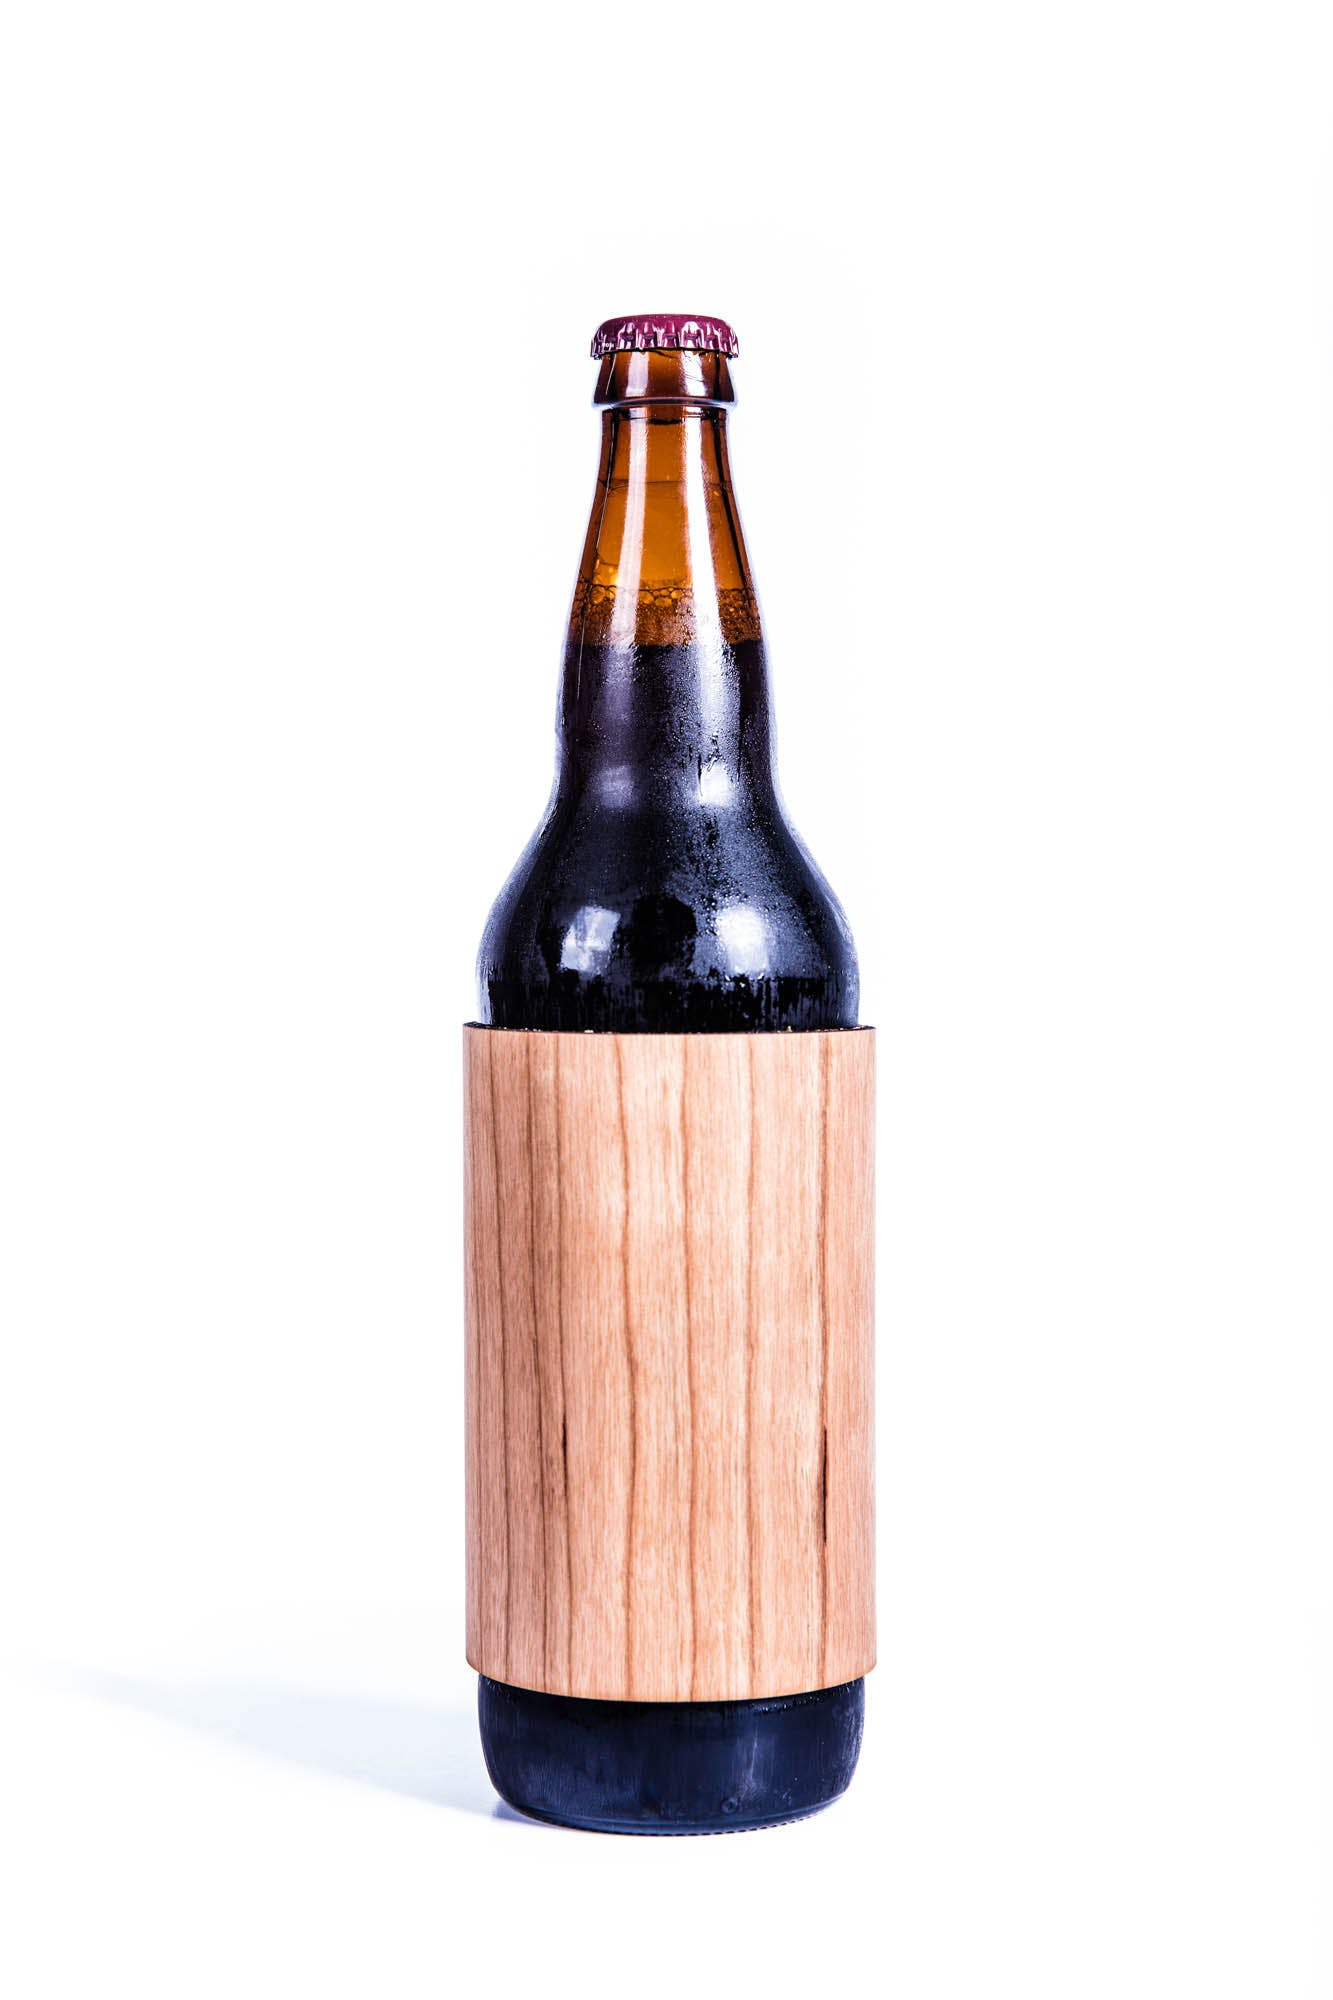 Real Wood 22oz. Koozie Koozie sold by Just 1 Tree